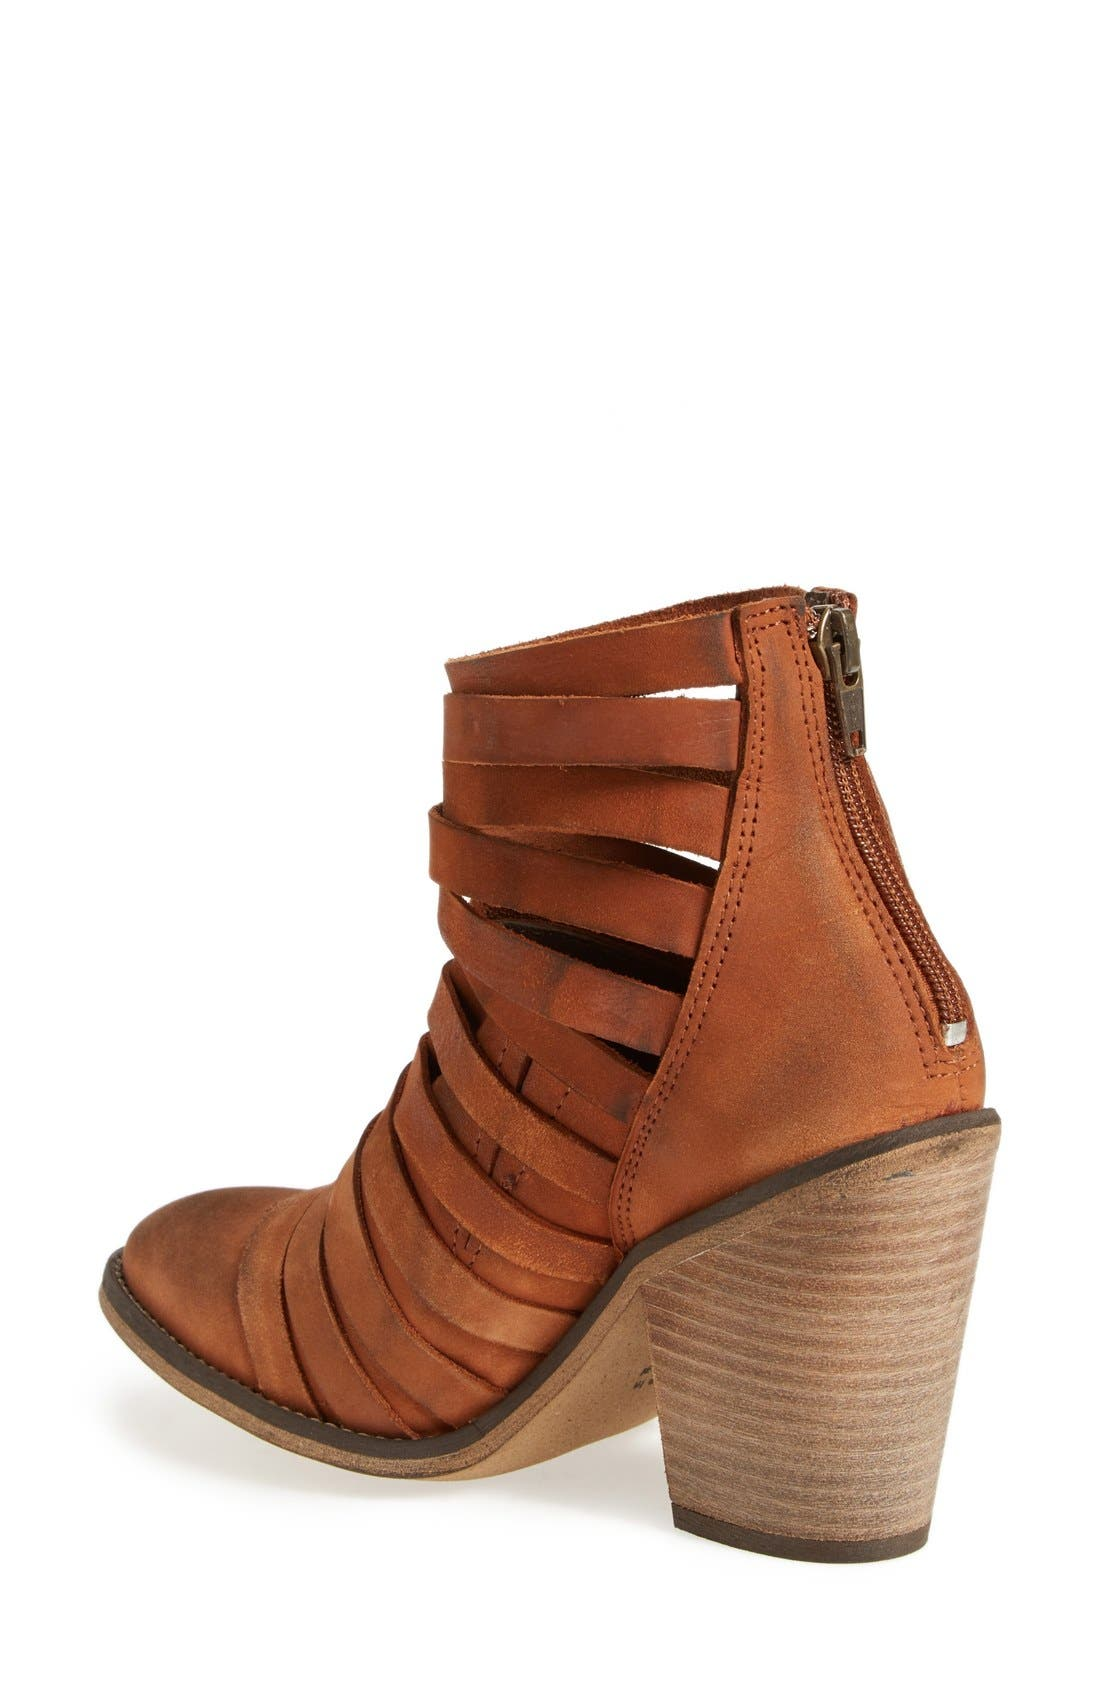 'Hybrid' Strappy Leather Bootie,                             Alternate thumbnail 2, color,                             Terracotta Leather